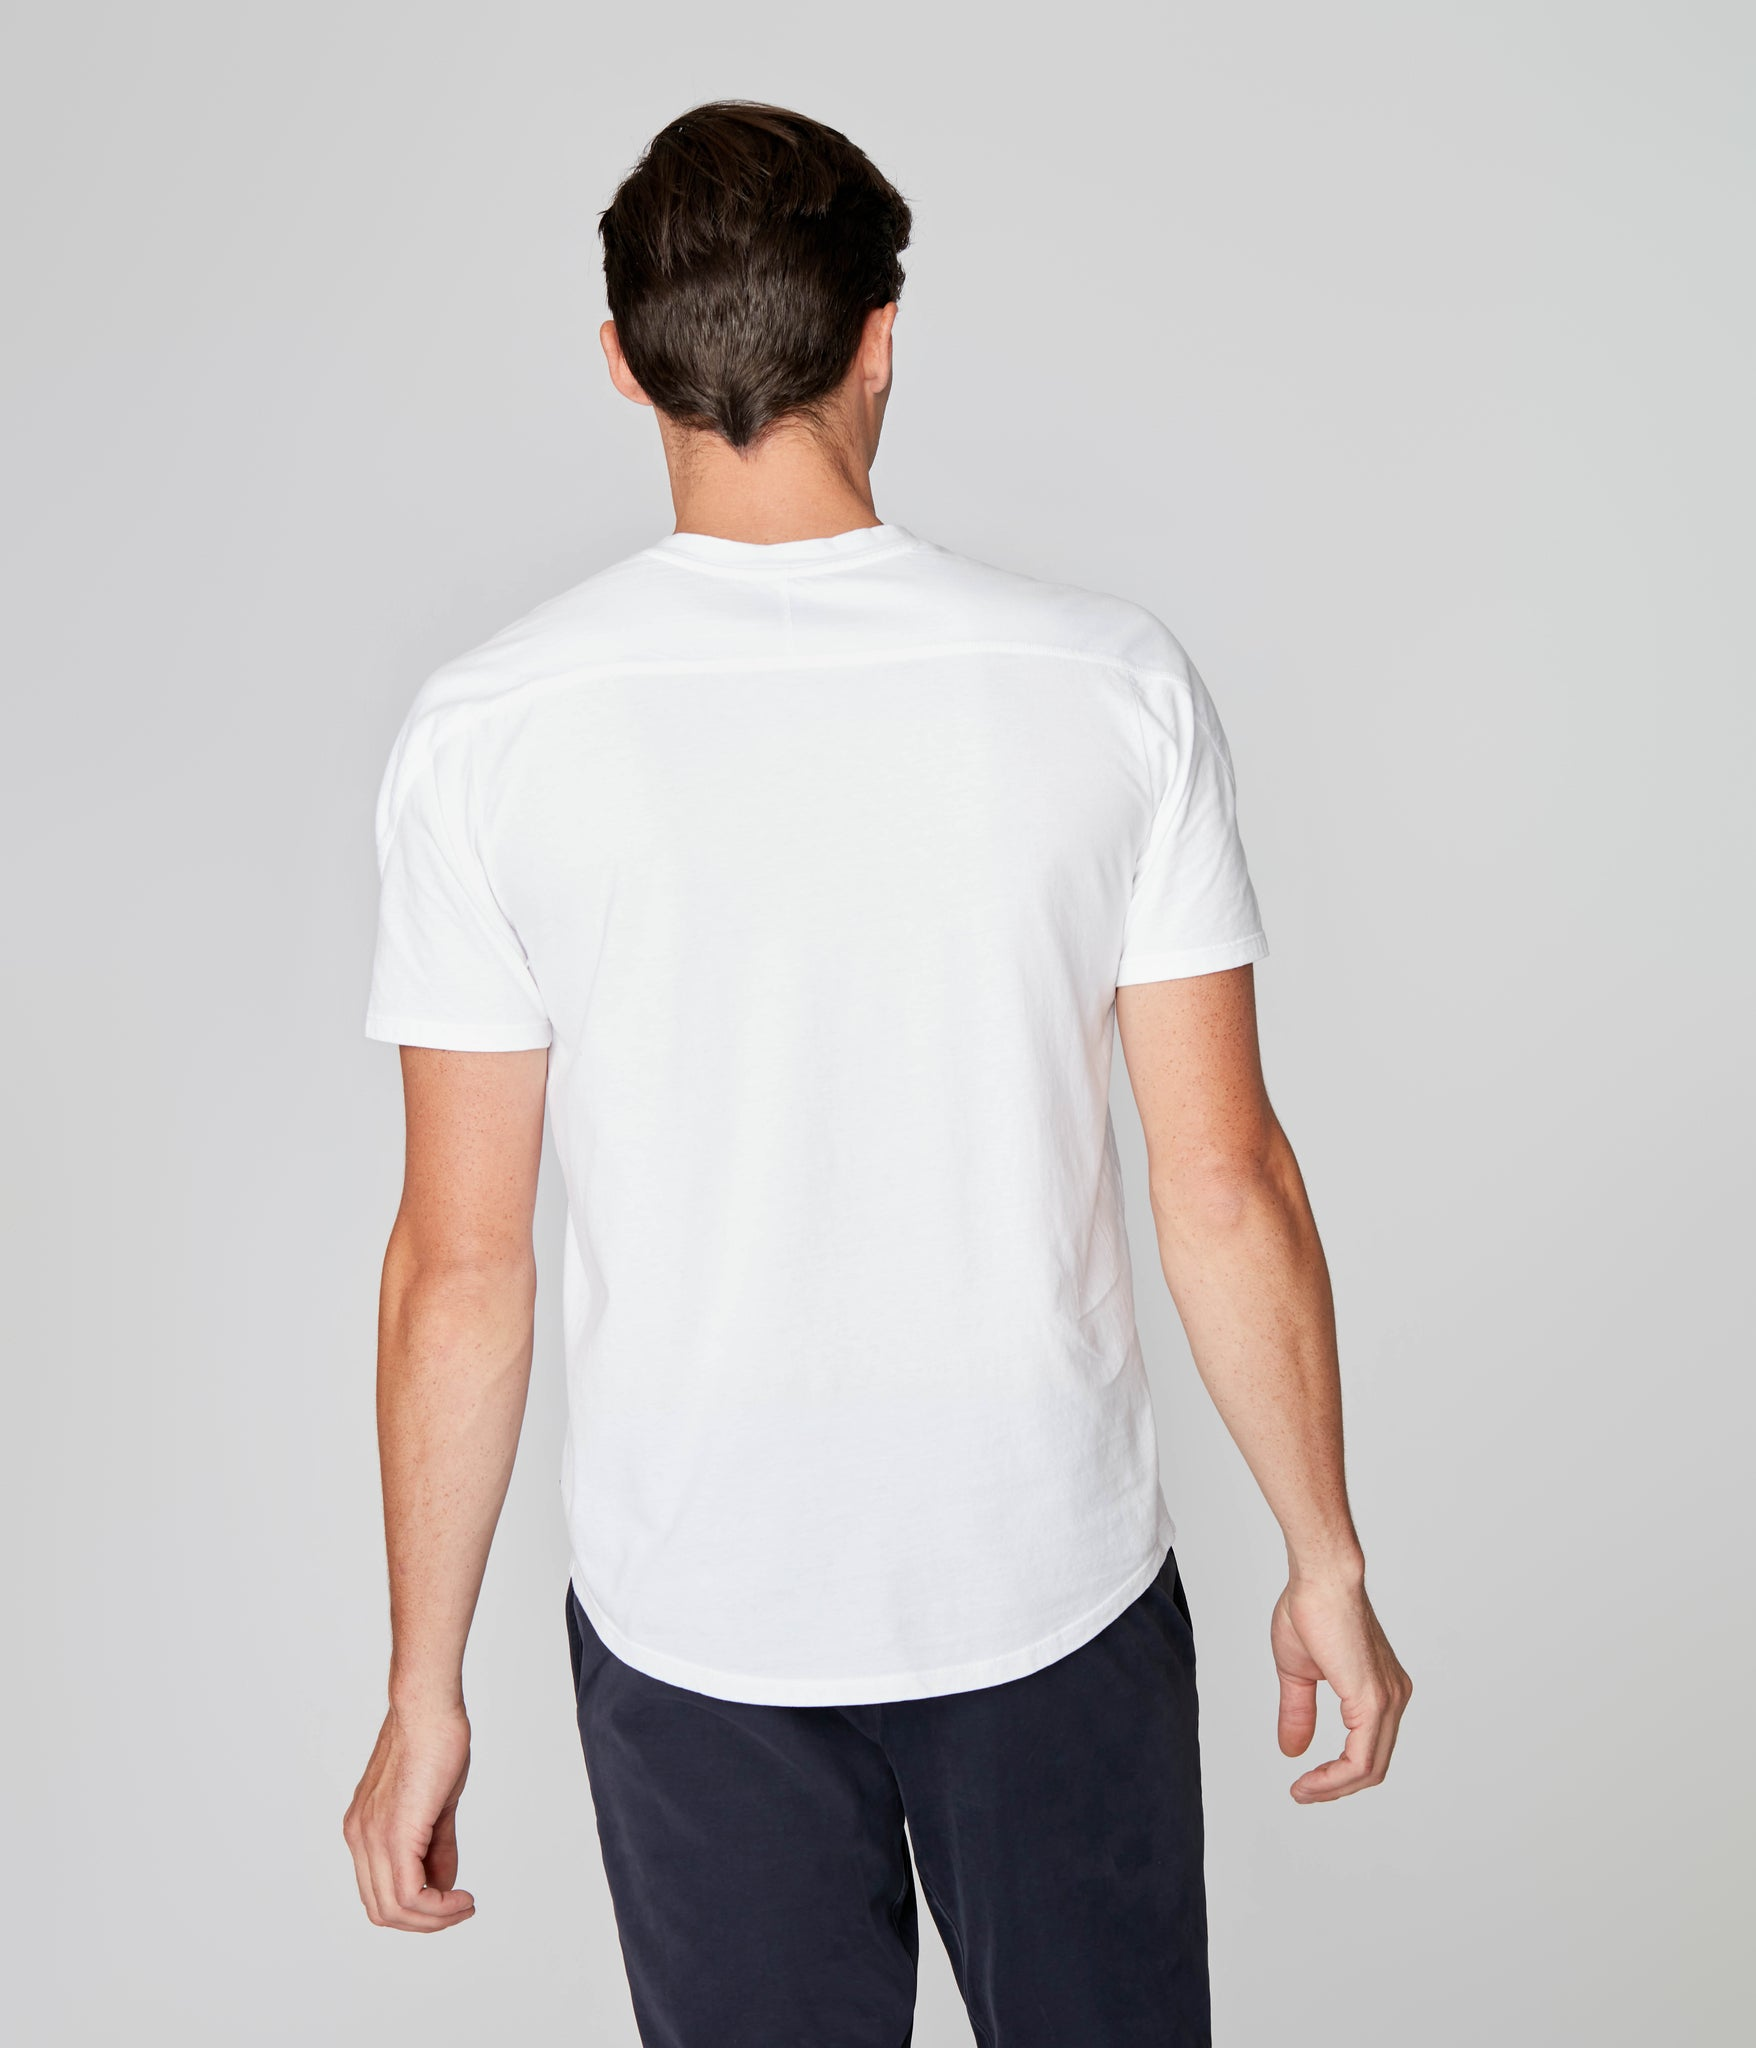 Premium Cotton Jersey Notch Neck Crew - White